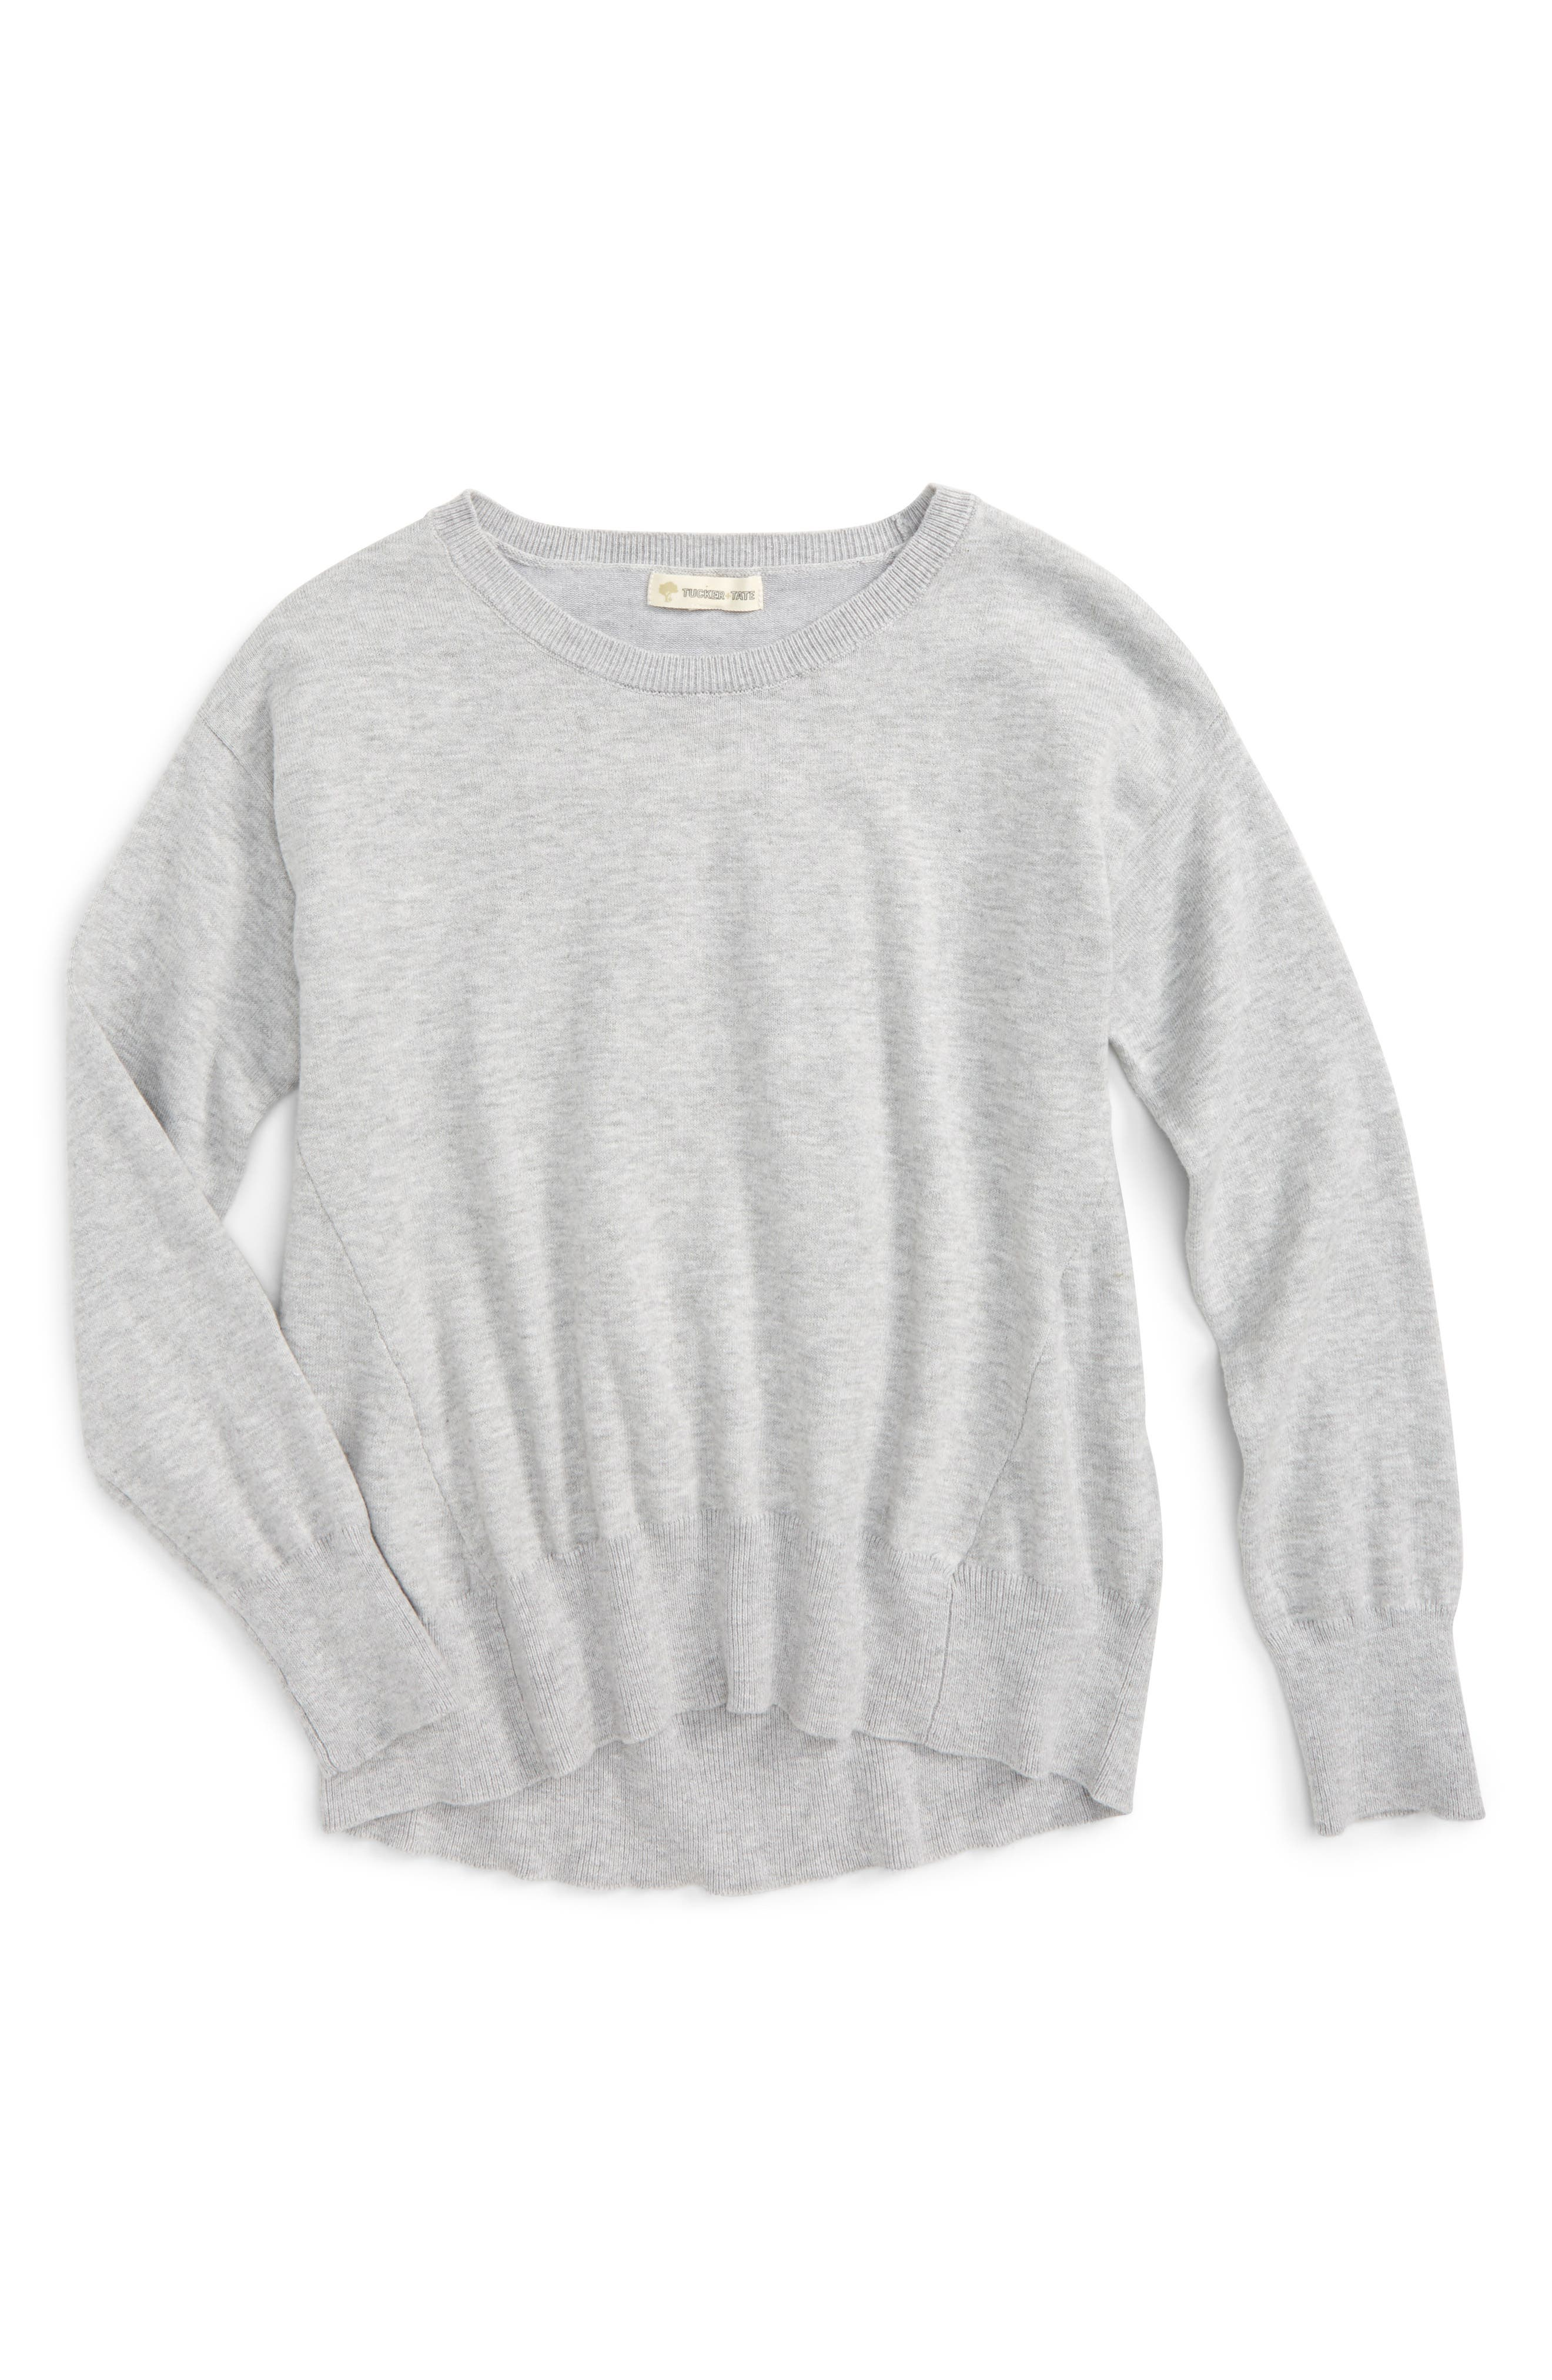 Tucker + Tate Easy Seam Knit Sweater (Big Girls)